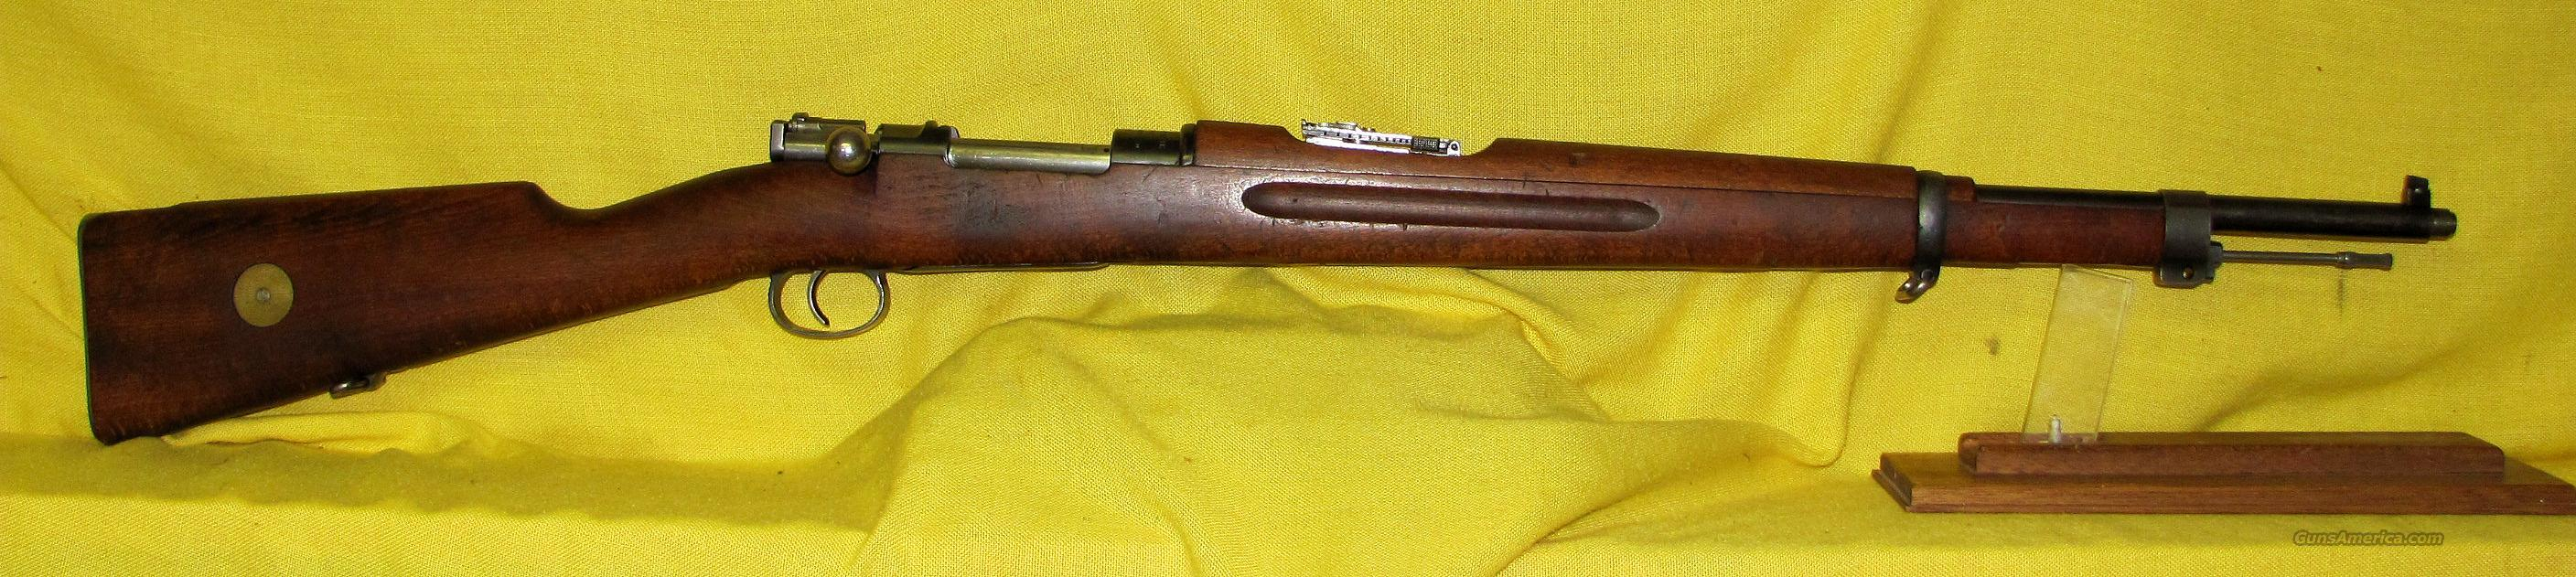 "MAUSER SWEDISH M-38 6.5MM 23 1/2""  Guns > Rifles > Mauser Rifles > German"